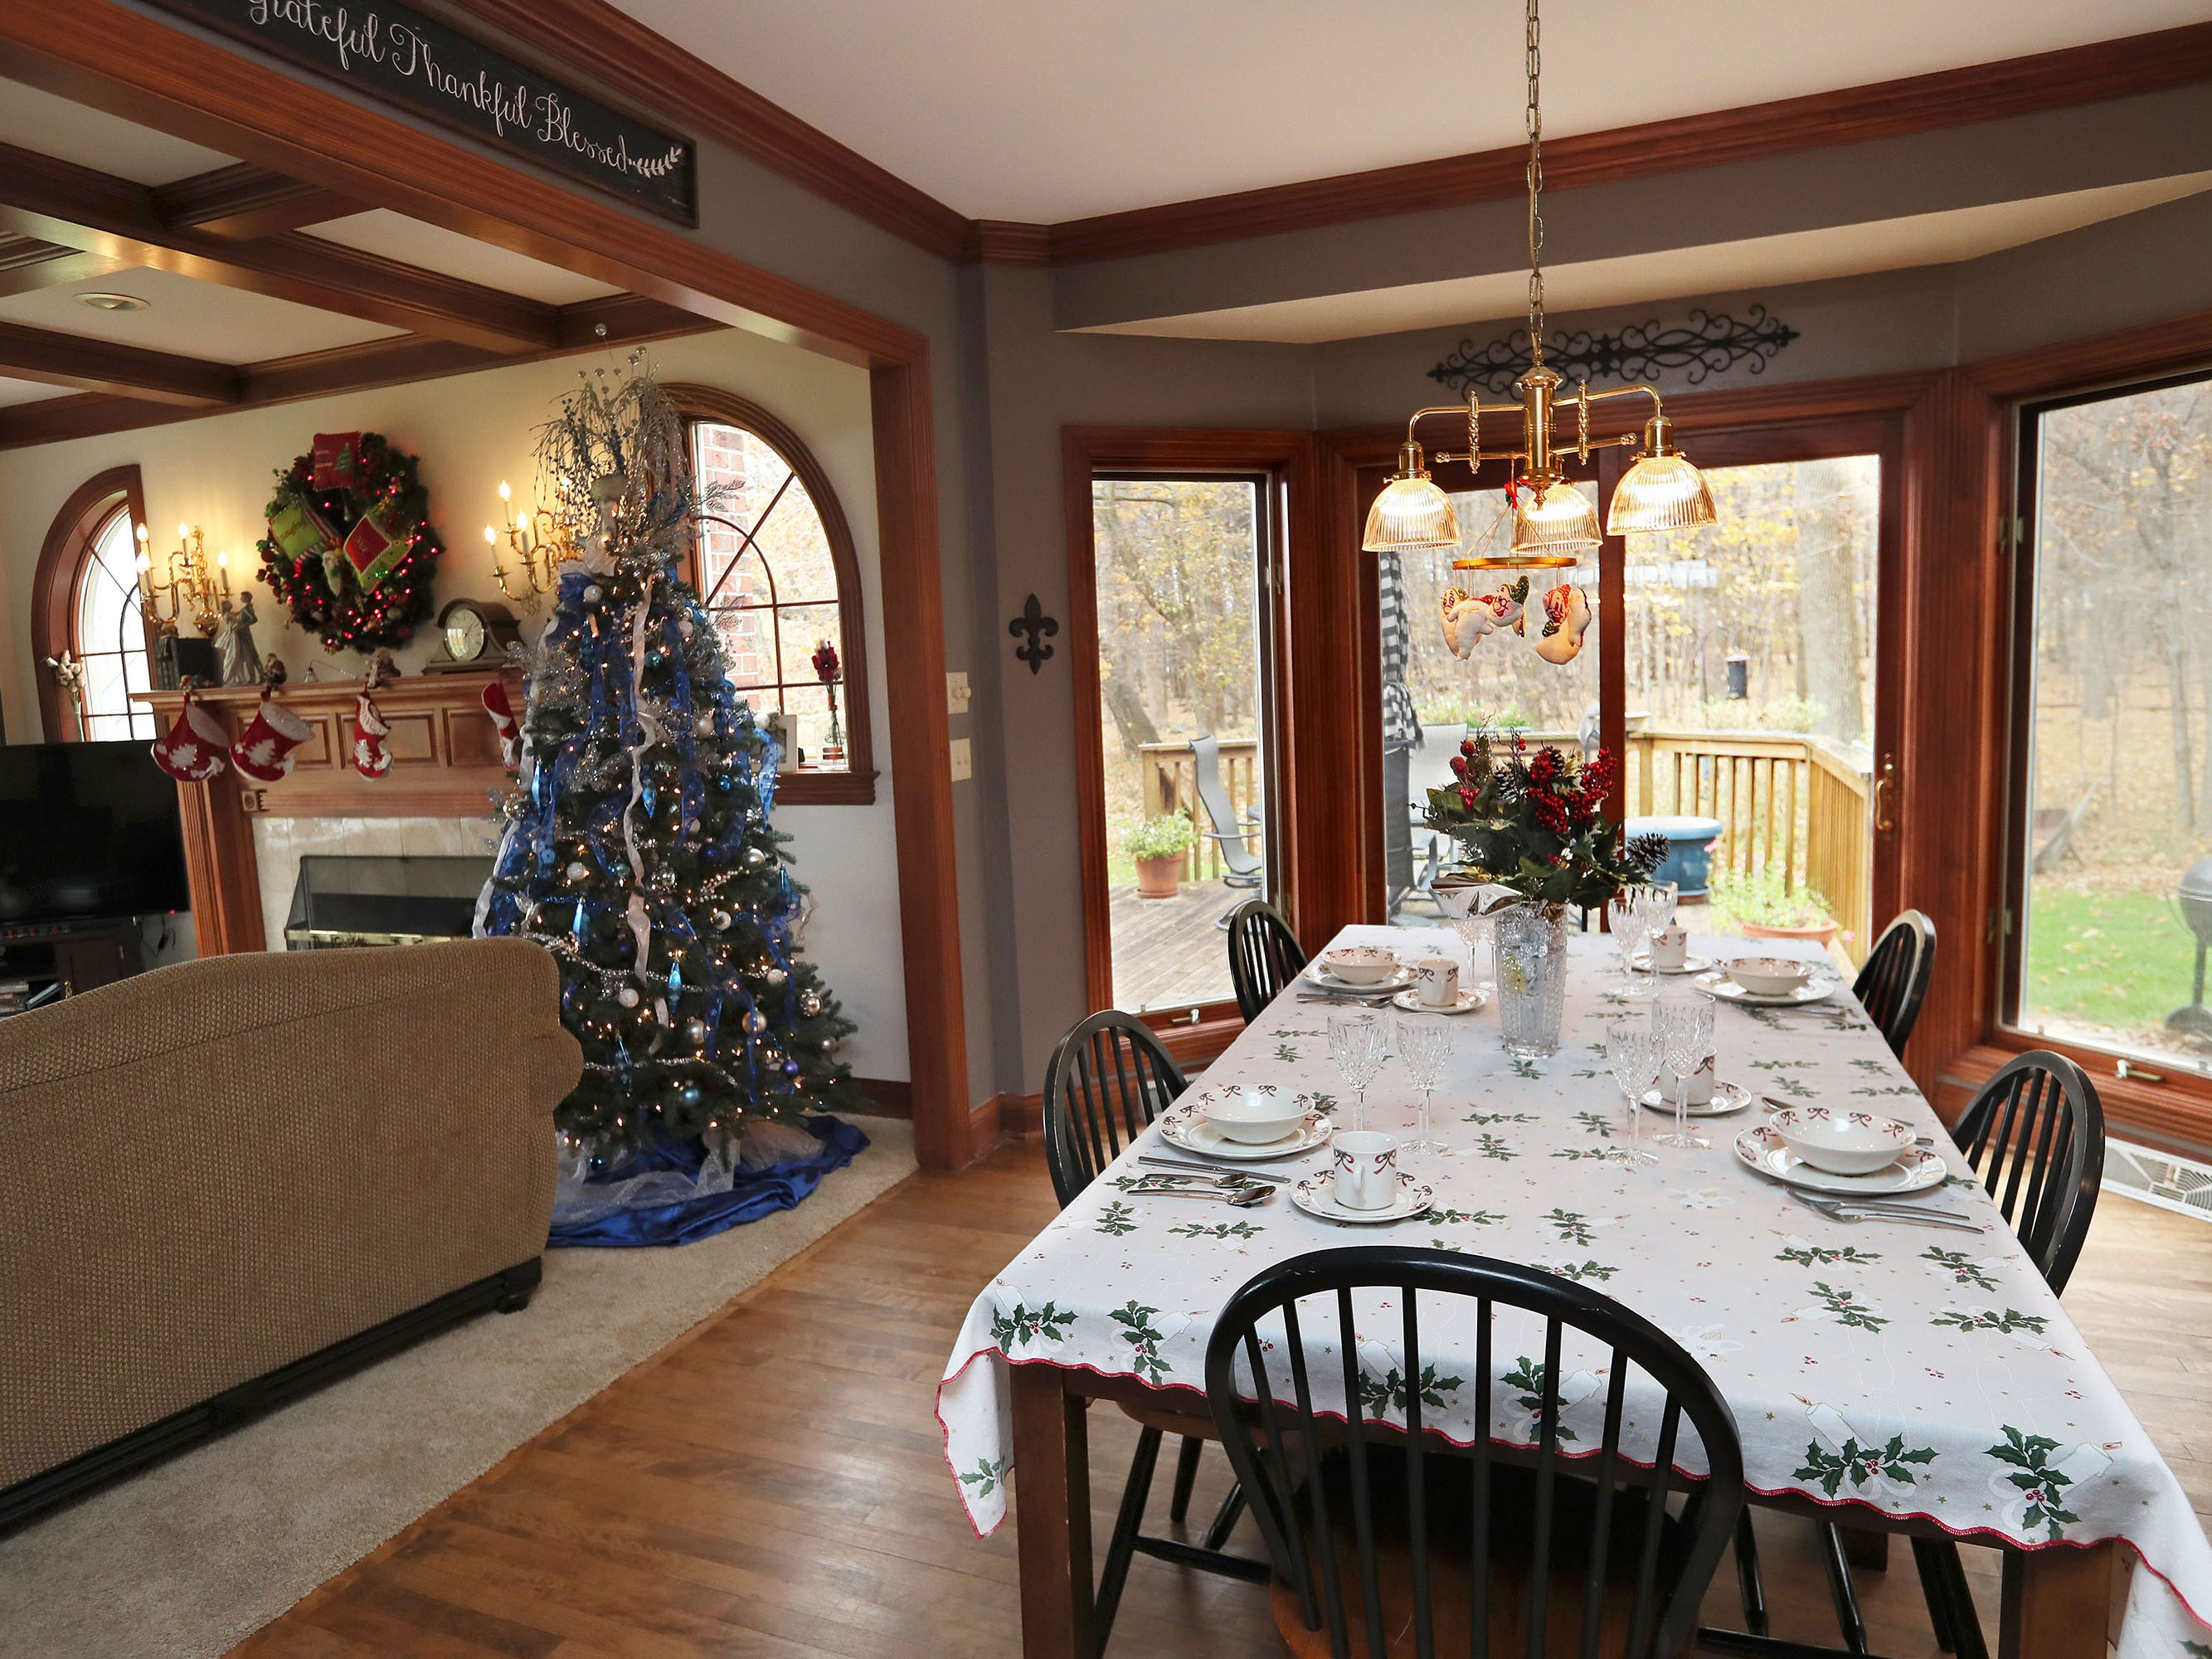 This informal dining area, set for Christmas, is between the family room and kitchen.